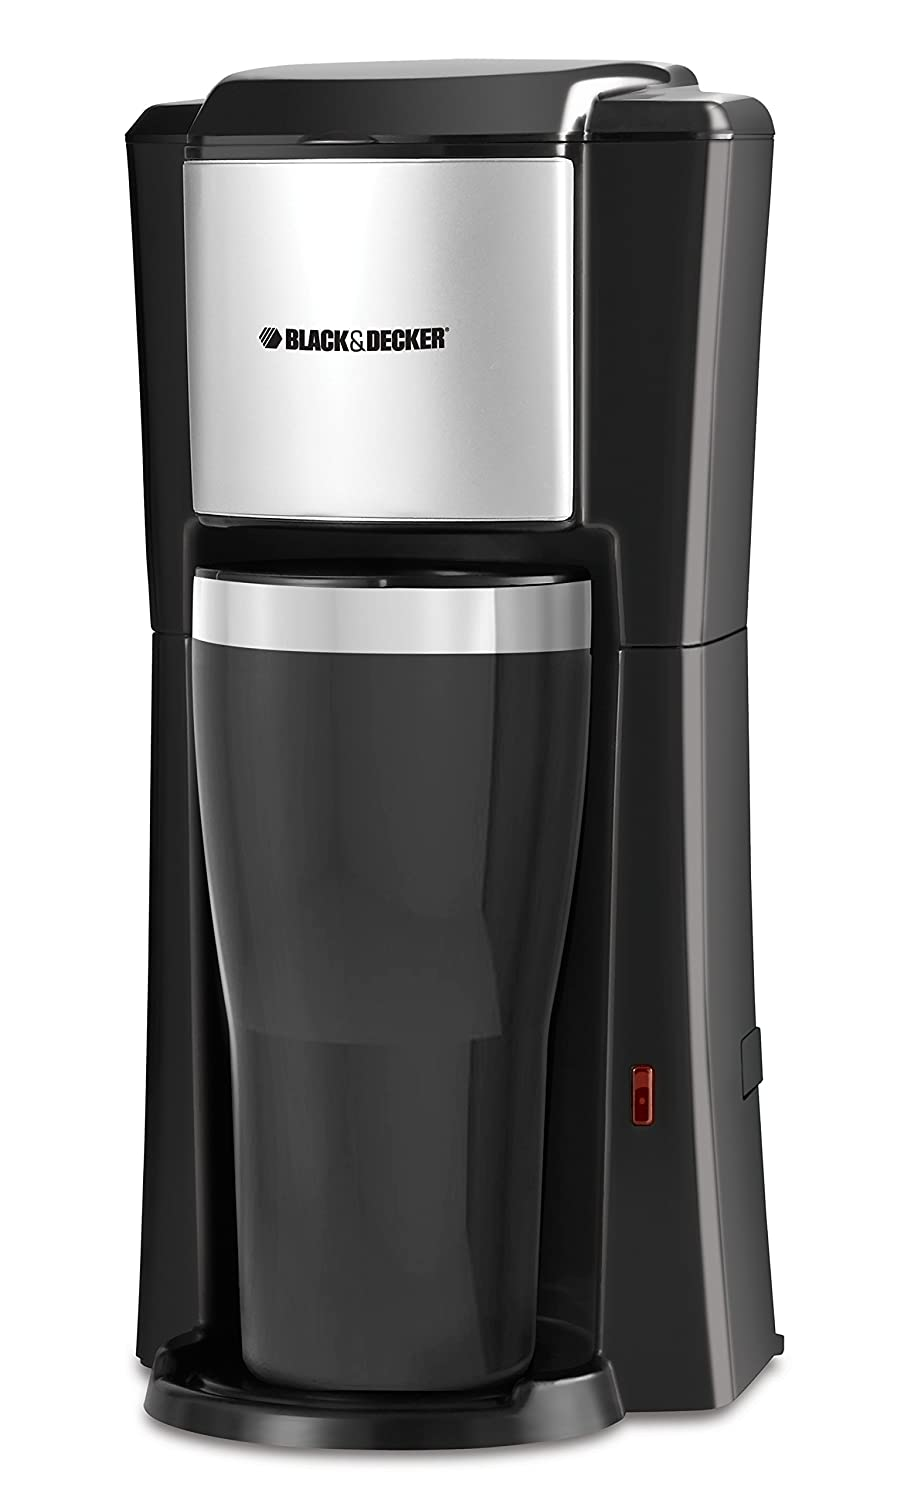 Blackdecker Single Serve Coffee Maker Includes One Dishwasher Safe